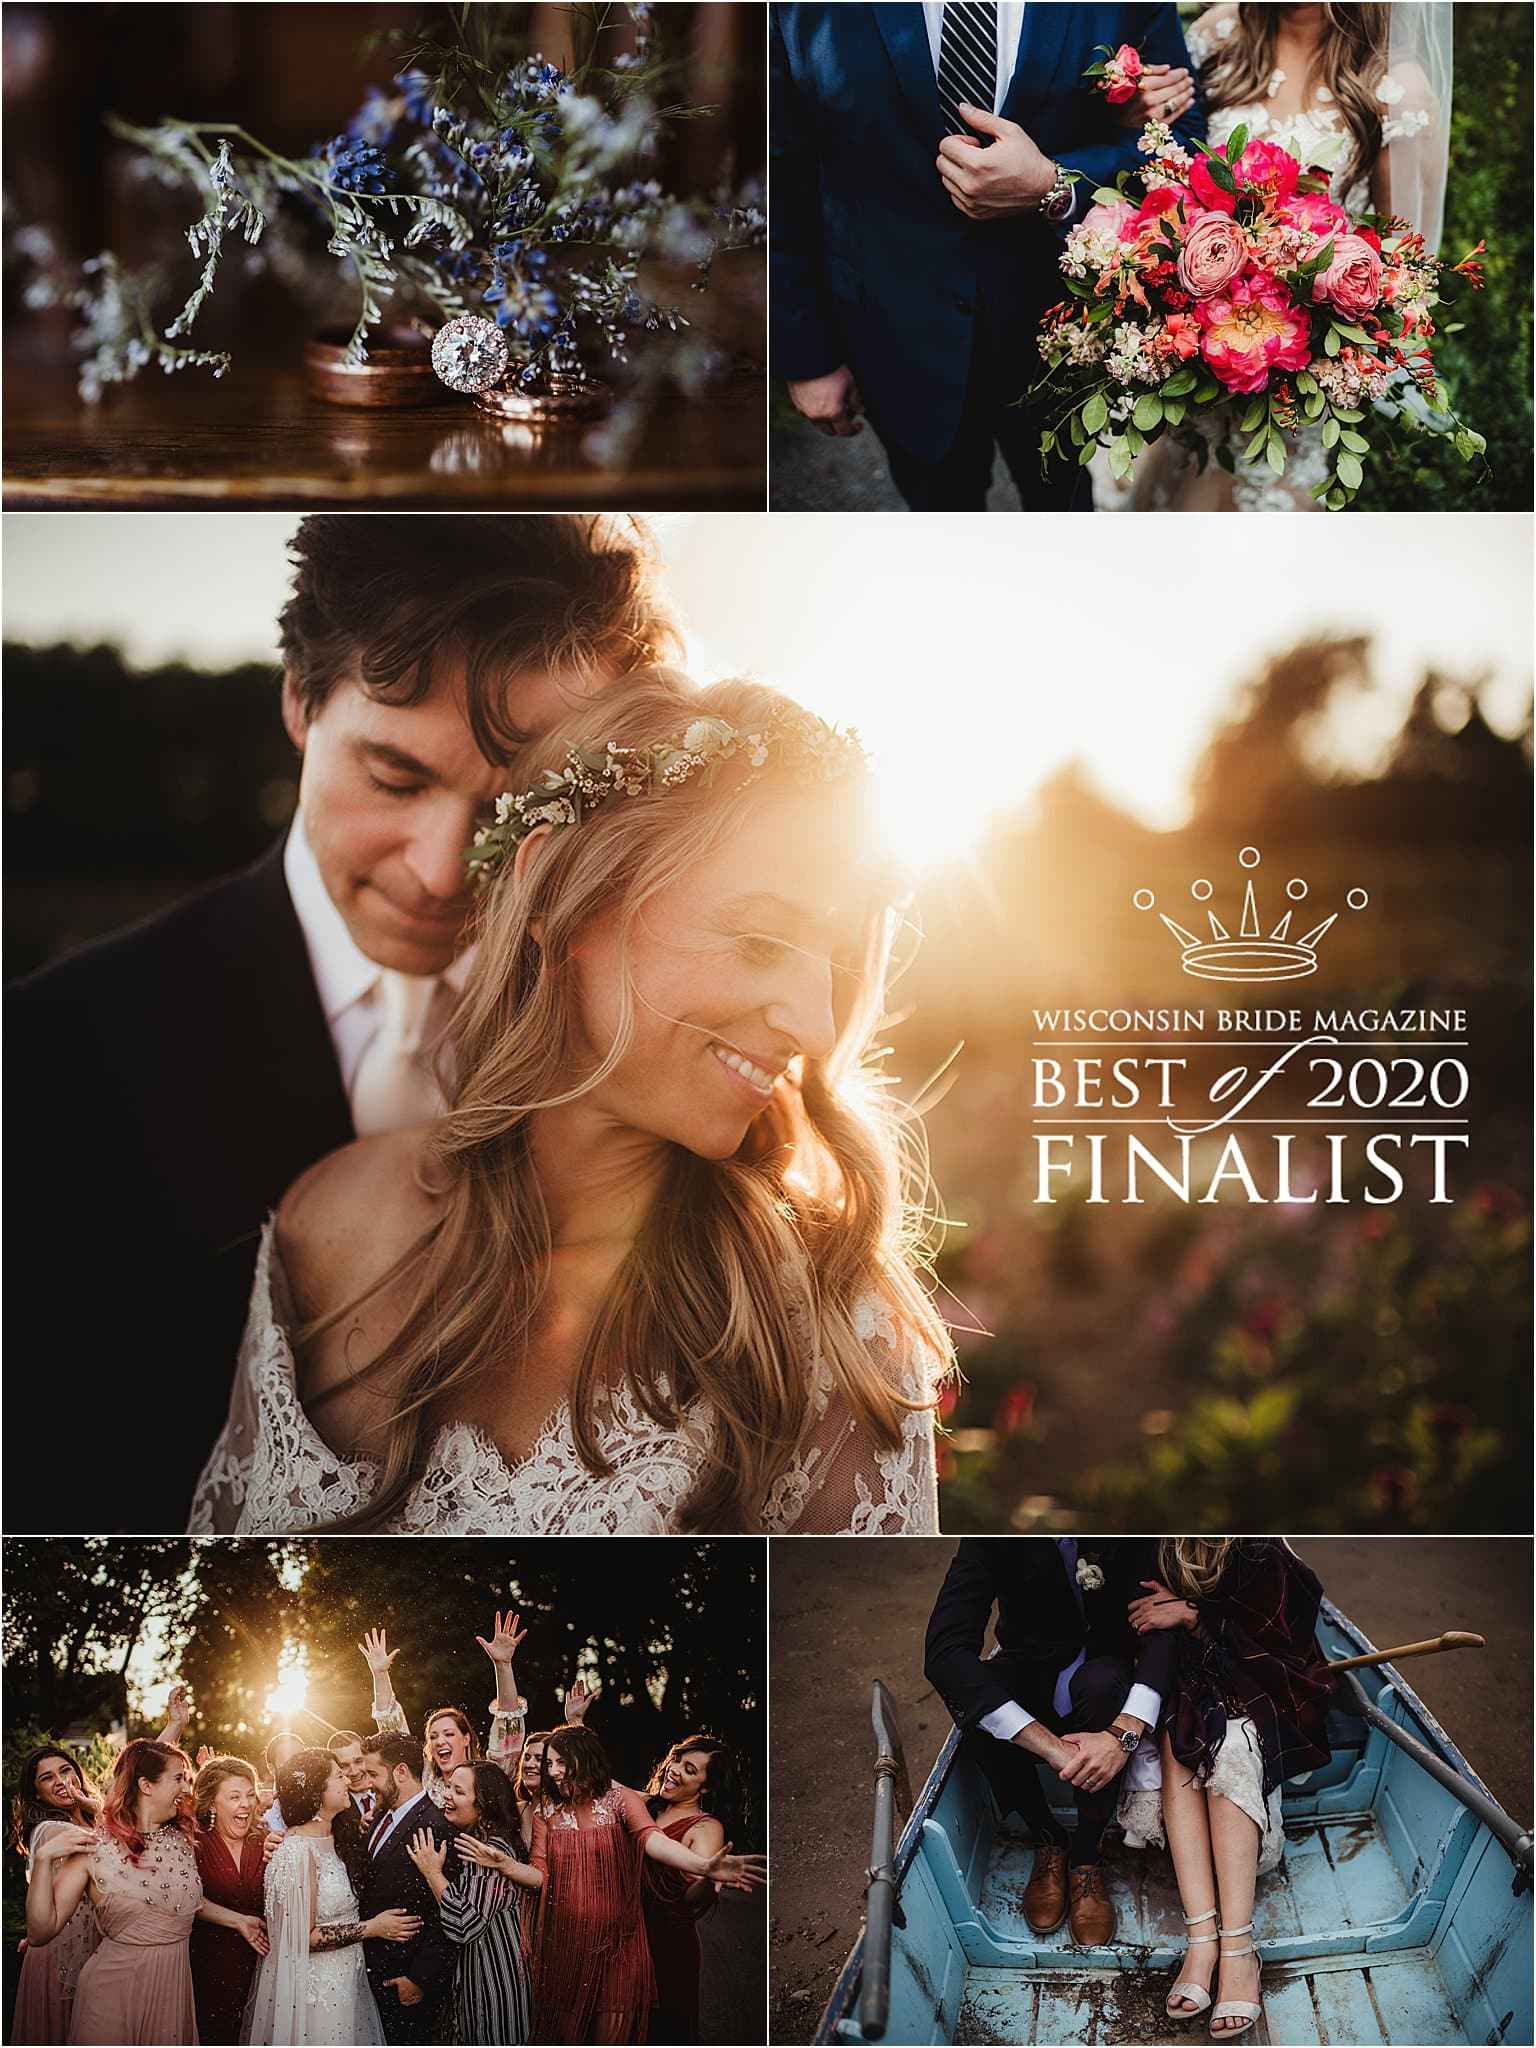 Wisconsin bride best of finalist photographer